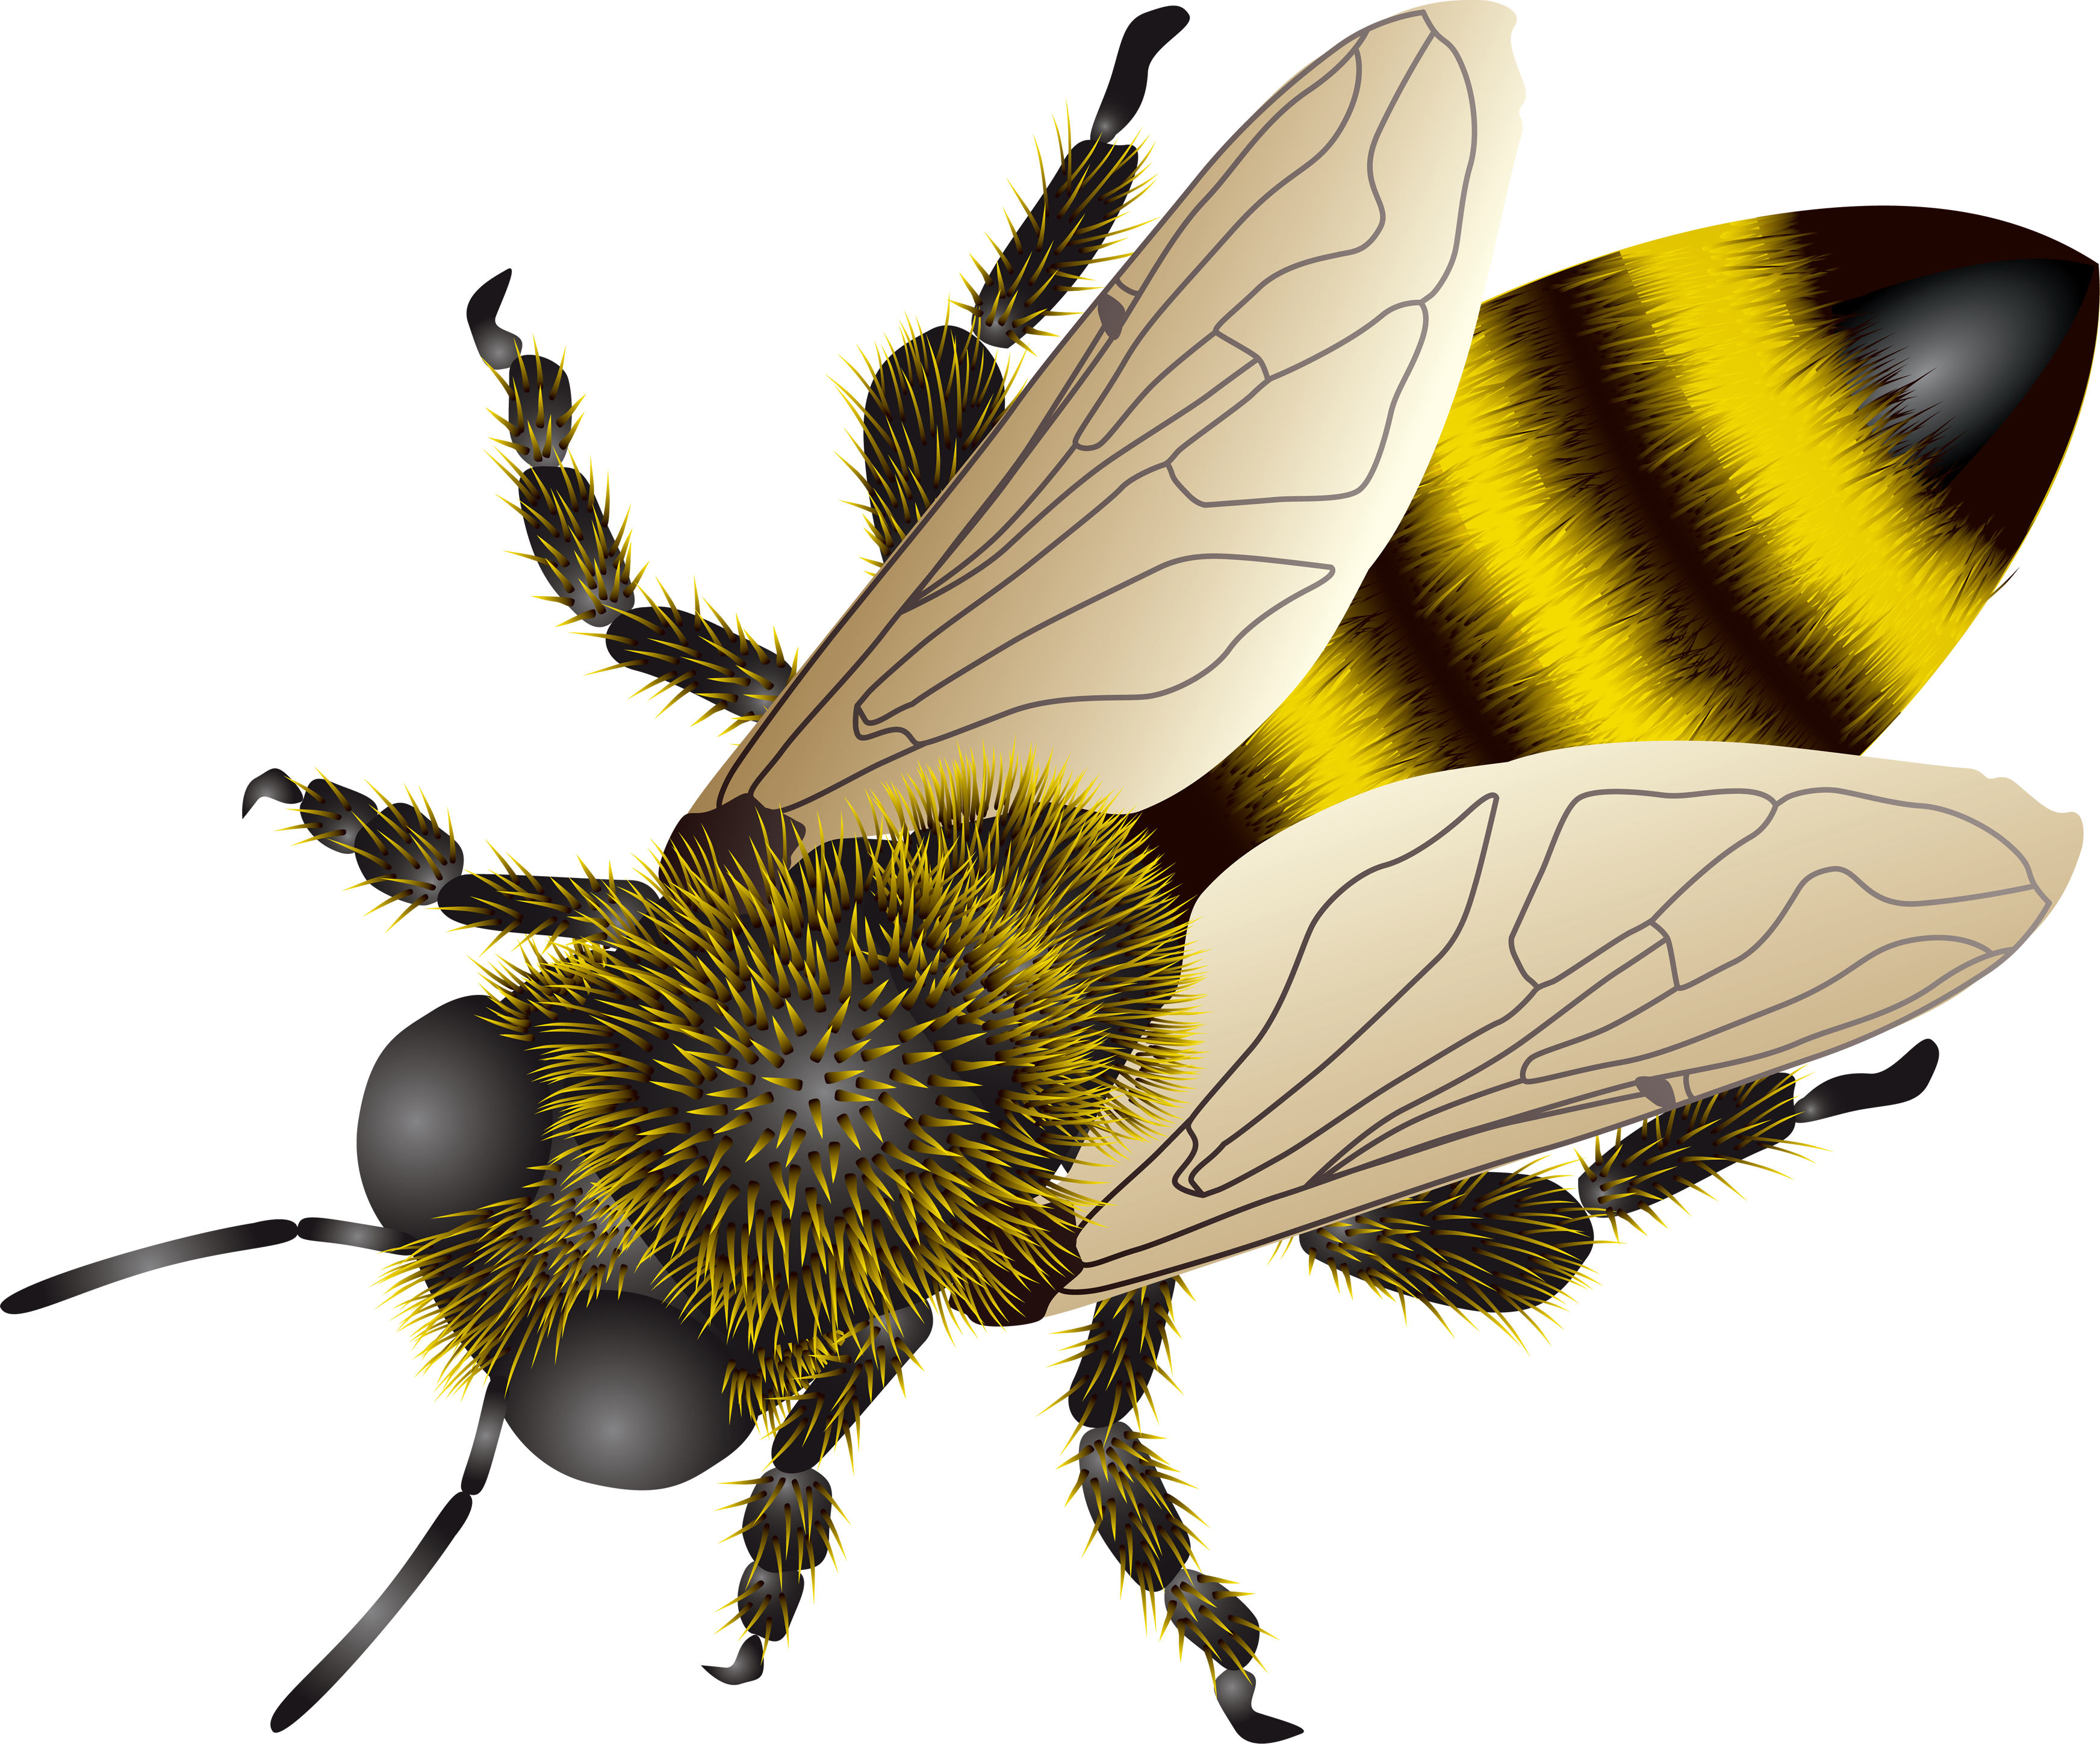 Bee Background Transparent image #45408